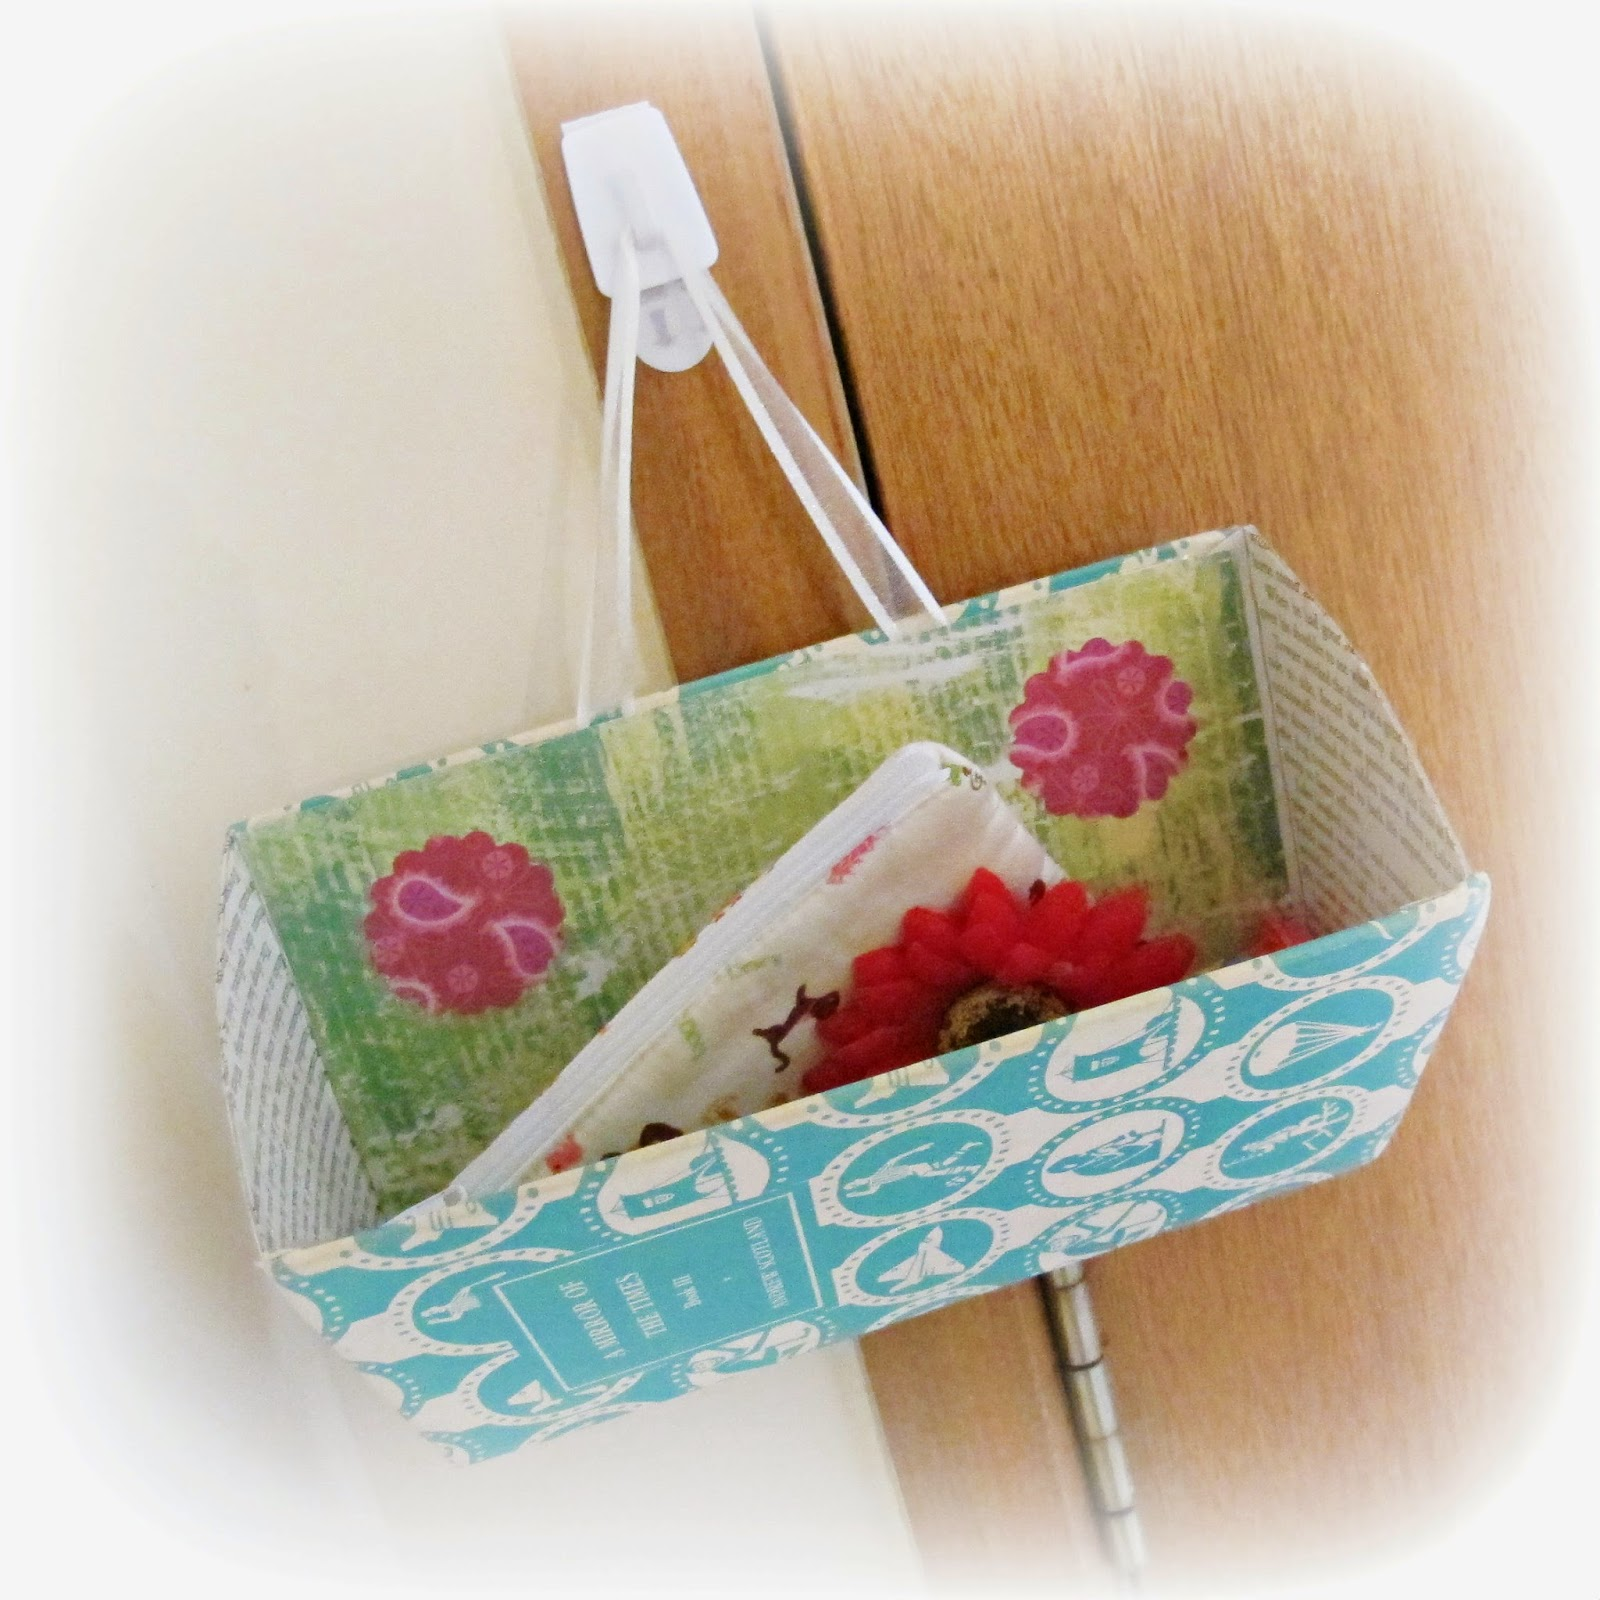 image green and pink upcycled book caddy storage solution wall pocket